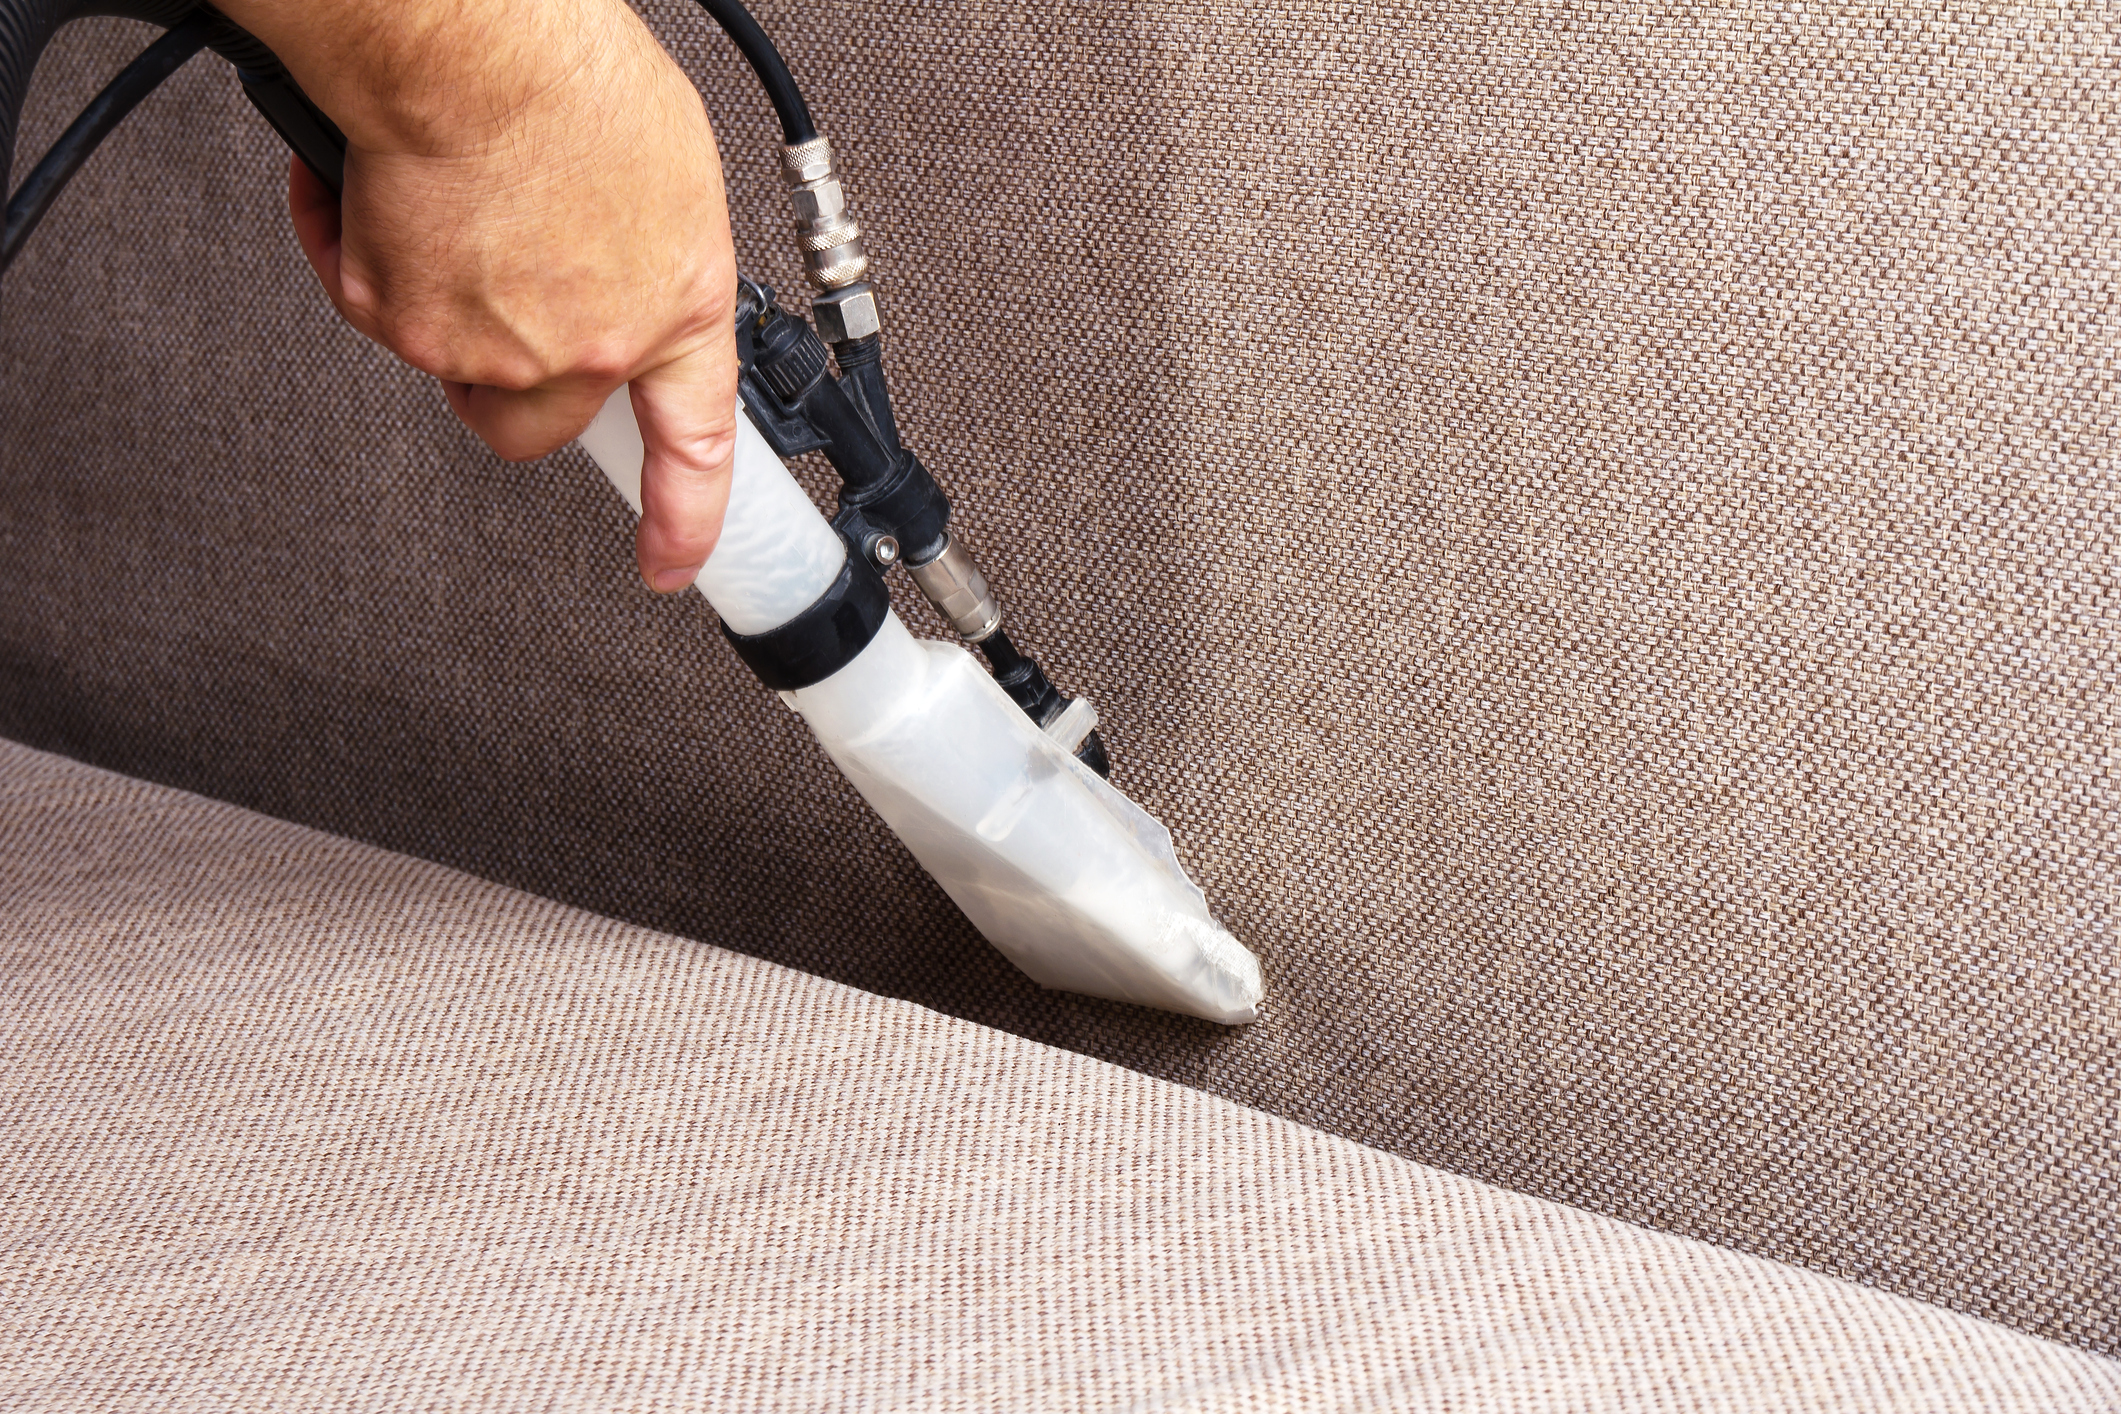 Upholstery Cleaning - Professional upholstery cleaning removes unwanted oil and dander that lies deep within the fiber of your favorite couch, sectional and chair. A New Life Clean will revive your upholstery like new, making movie night a success.